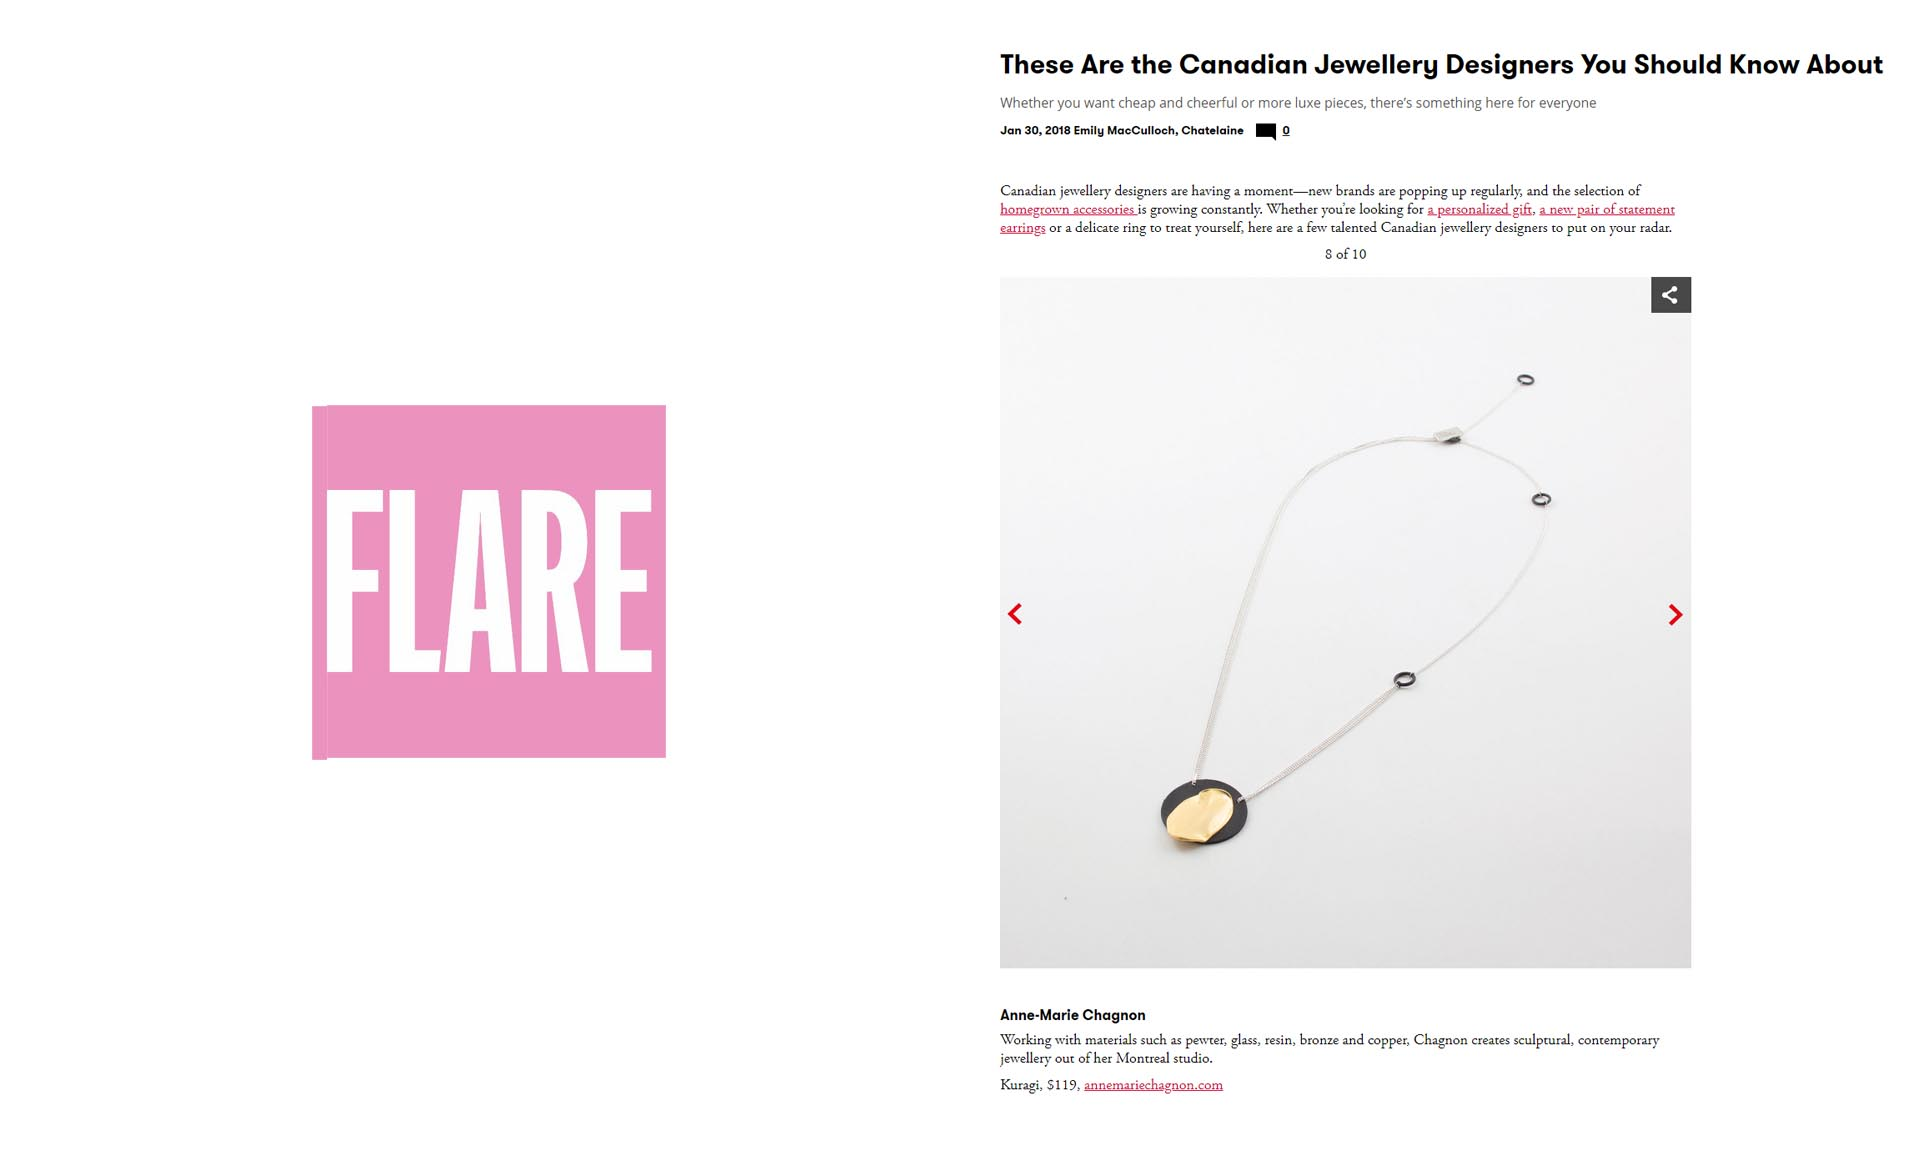 Anne-Marie Chagnon on the top 10 of Canadian Jewellery designers, by Flare Magazine